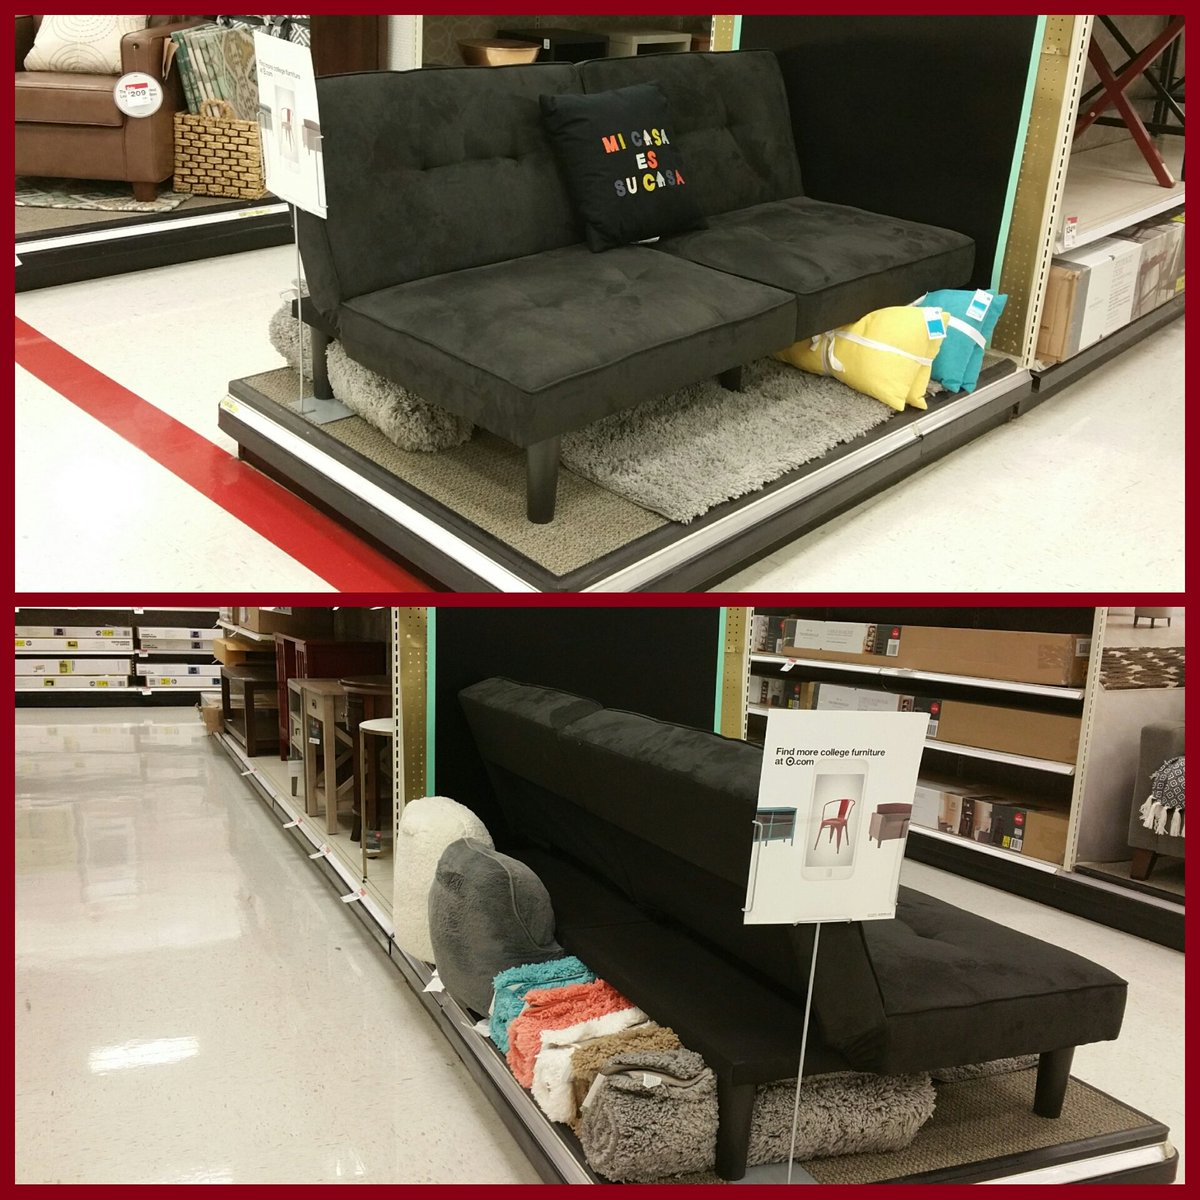 Focal Refresh In Time For The Weekend! #backfromhiatus #BTC #T1007  #vmtllife #targetpic.twitter.com/zGRWcD0vj8